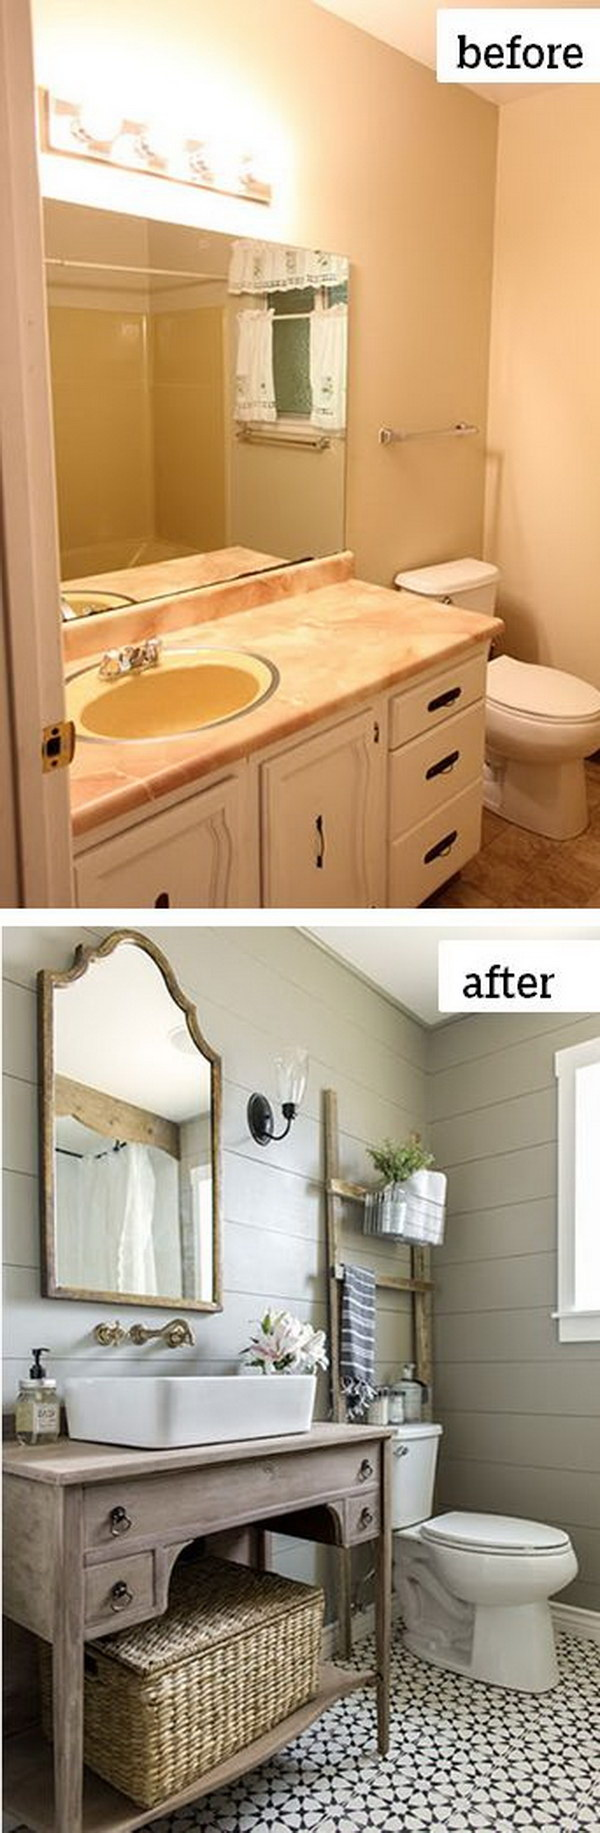 Before and after makeovers 20 most beautiful bathroom How to remodel a bathroom